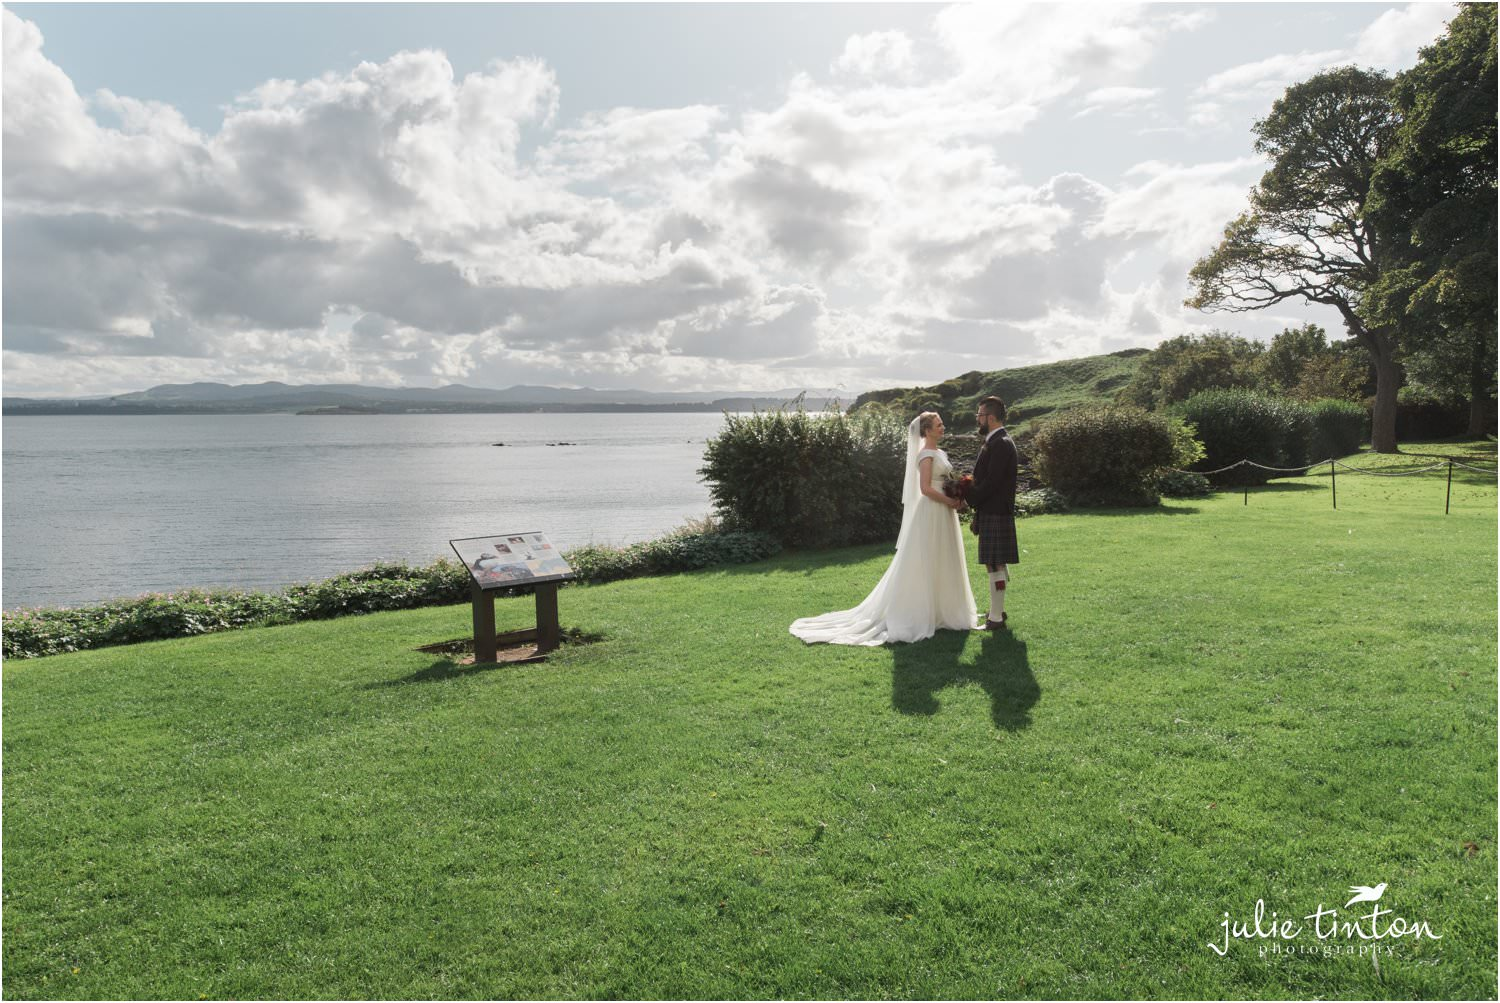 Bride and Groom at Inchcolm Island